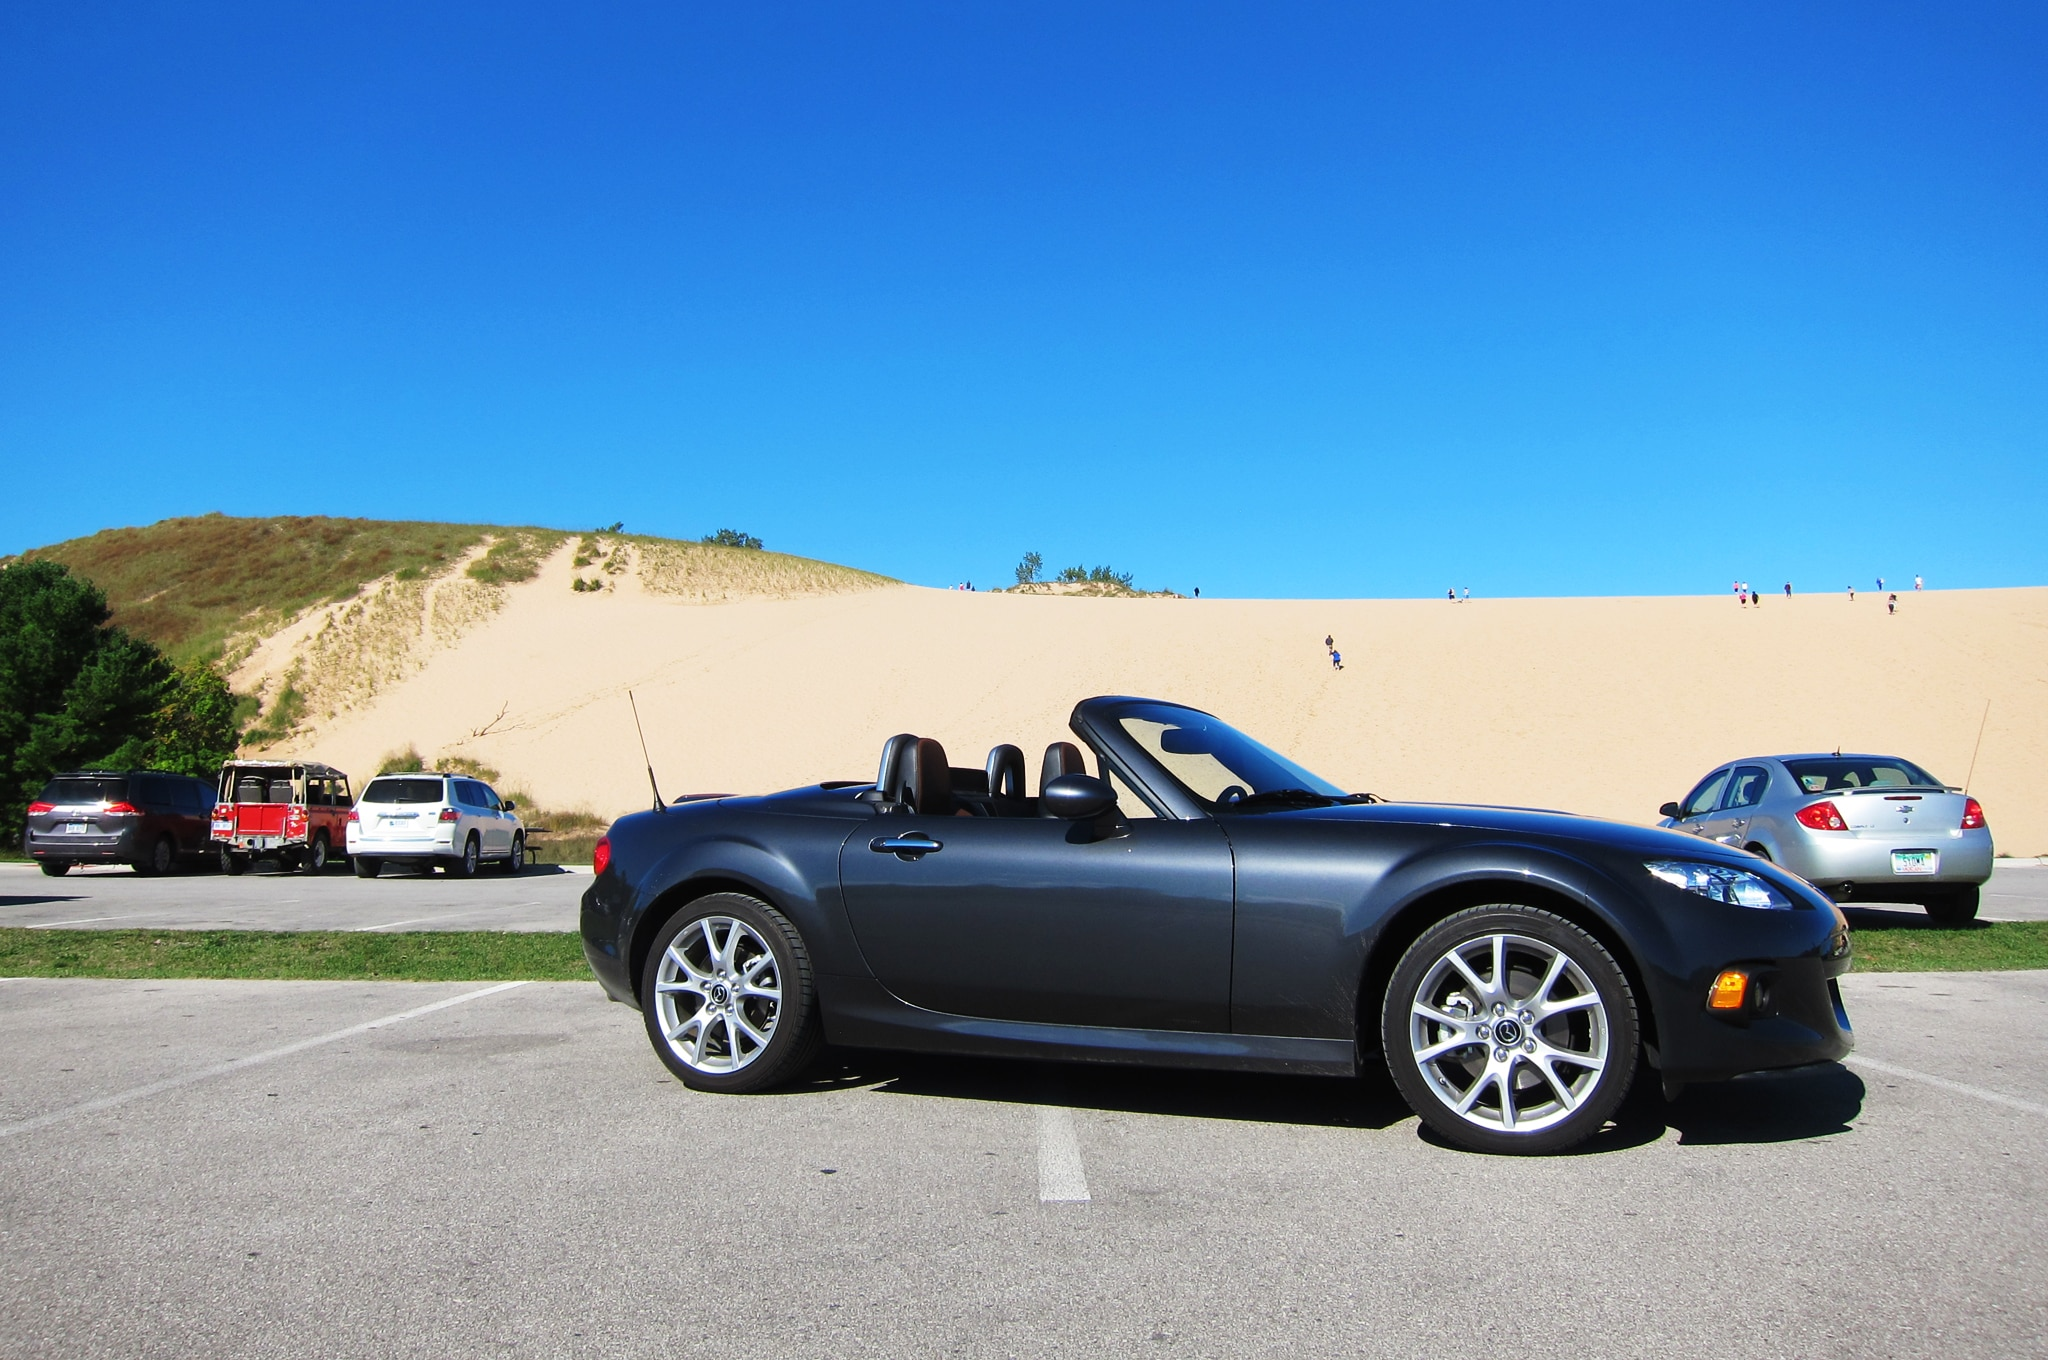 2014 mazda mx 5 miata grand touring prht to the dunes and back. Black Bedroom Furniture Sets. Home Design Ideas